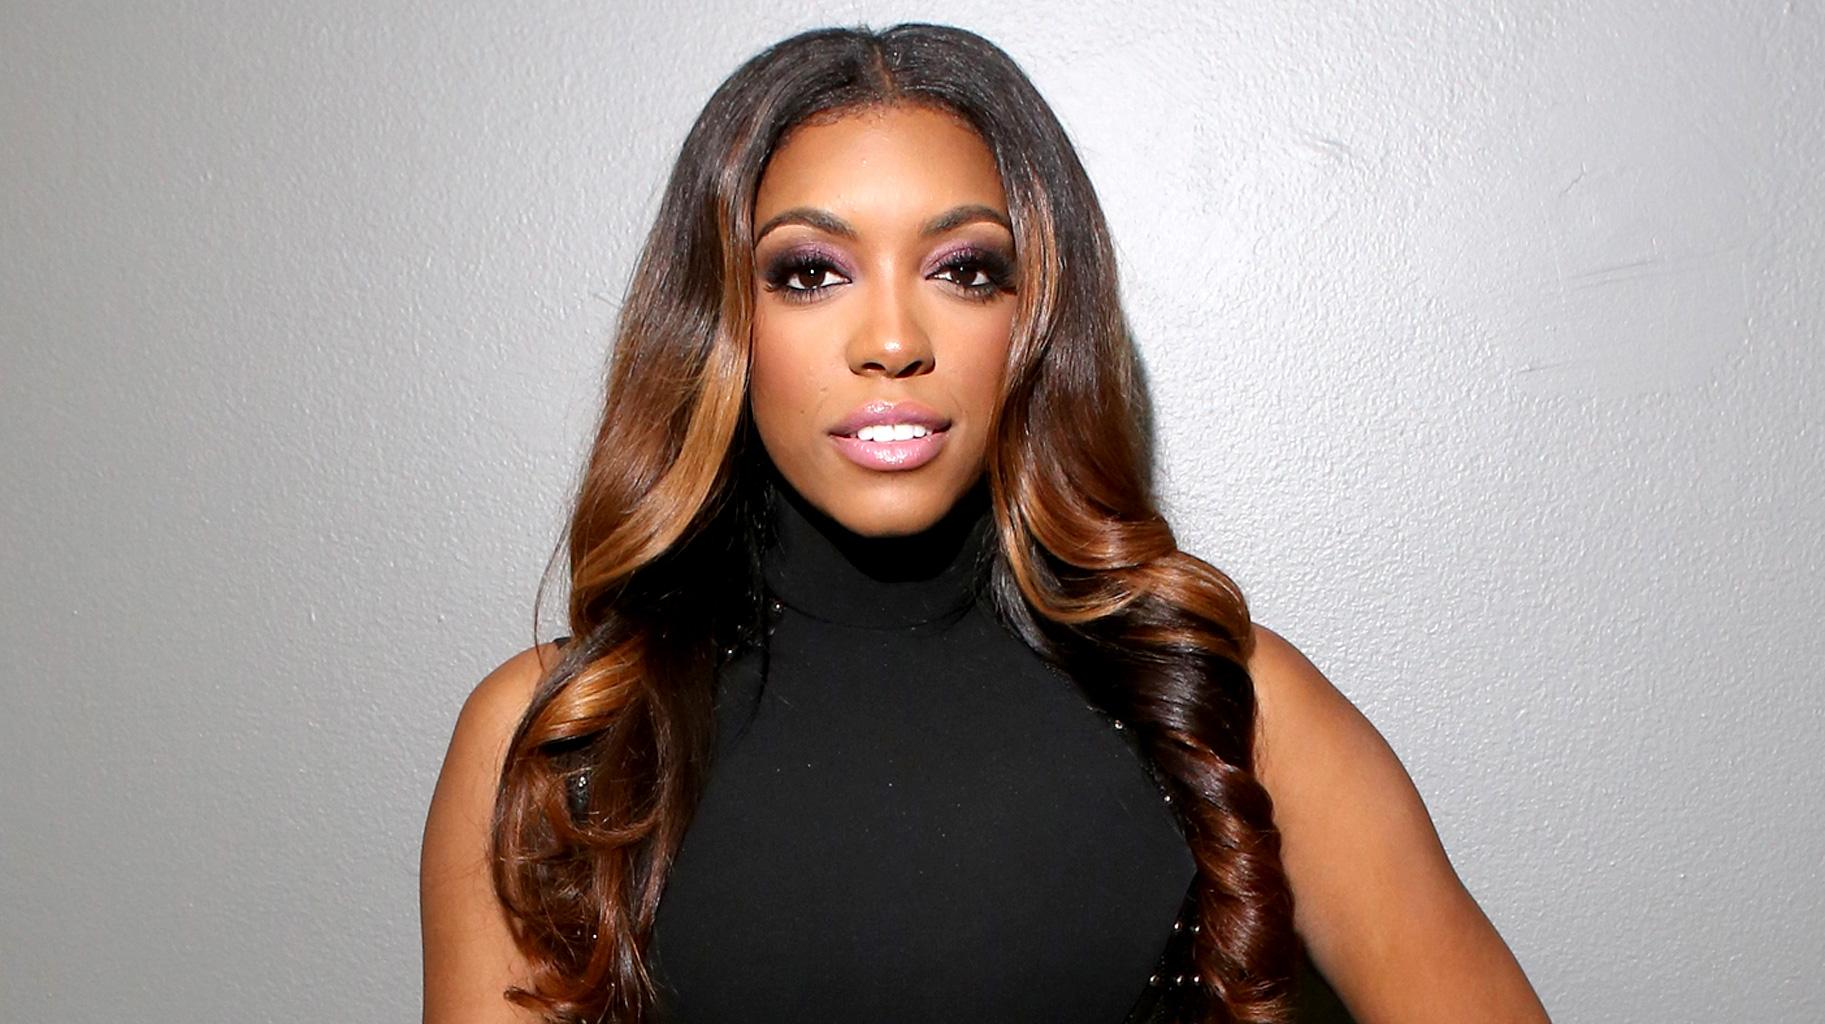 Porsha Williams Has Been Released Following Her Arrest While Protesting For Breonna Taylor - The RHOA Star Issues First Statement!